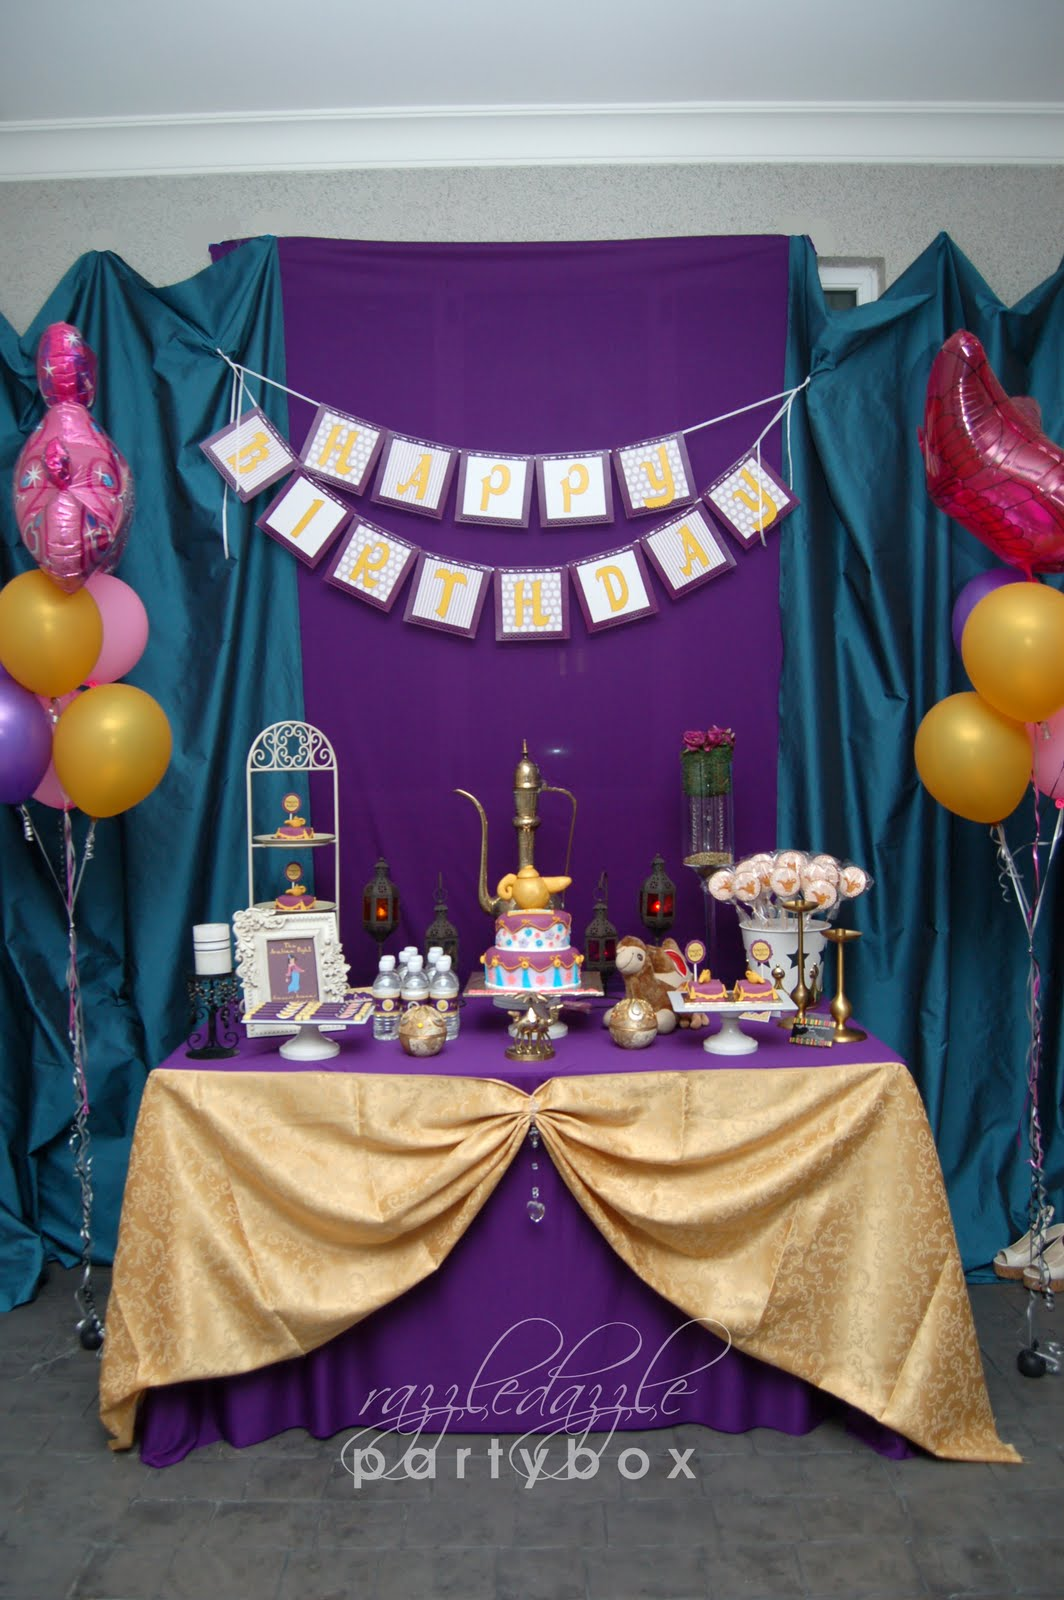 Razzle dazzle party box theme birthday party moroccan for Aladdin decoration ideas